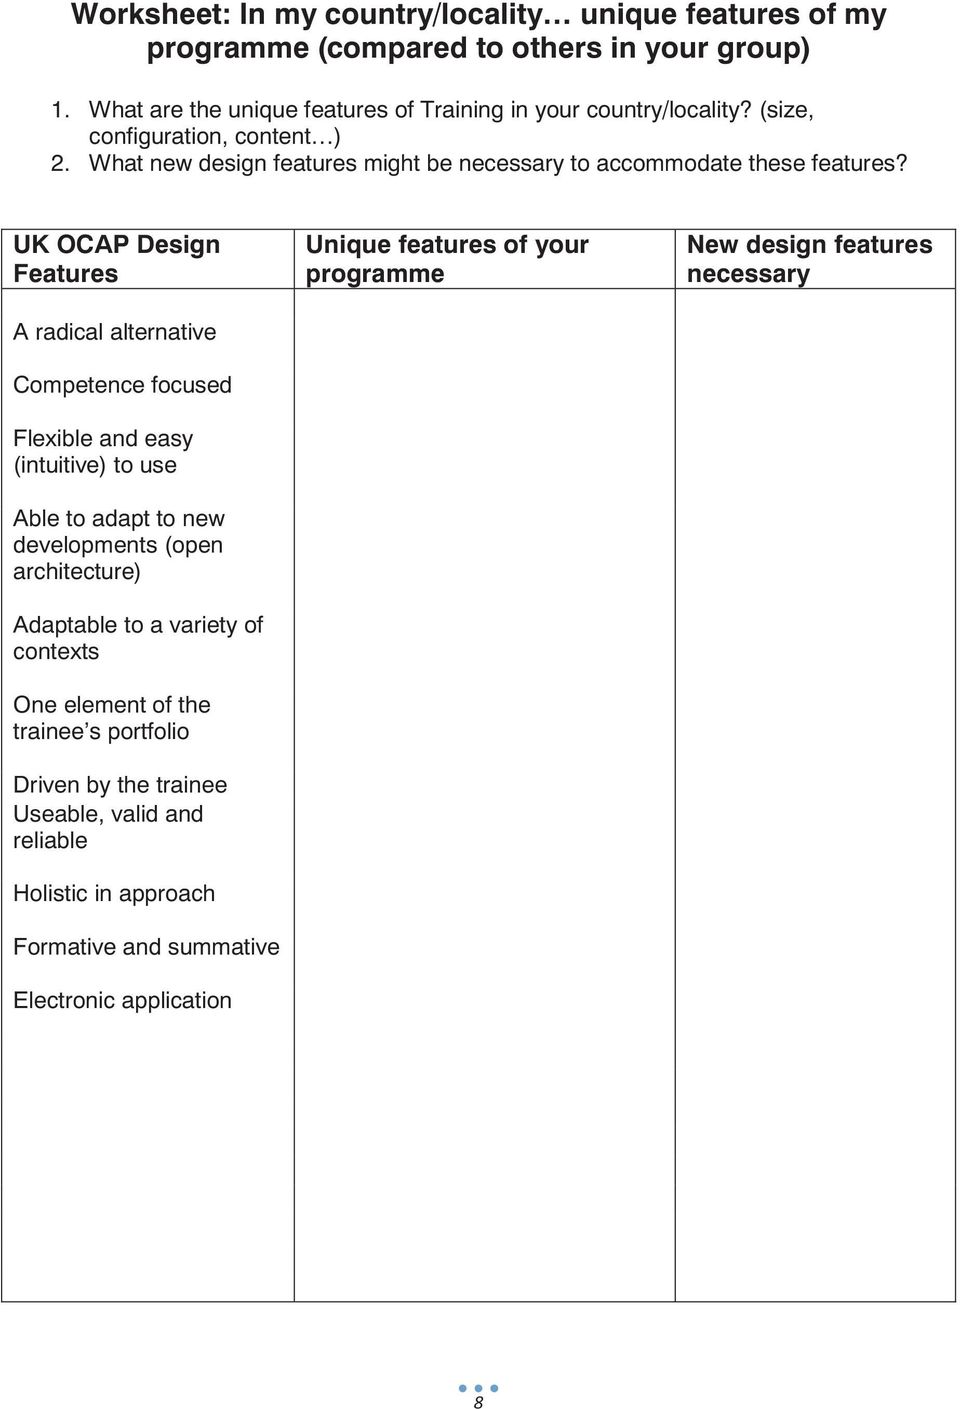 UK OCAP Design Features A radical alternative Competence focused Flexible and easy (intuitive) to use Able to adapt to new developments (open architecture) Adaptable to a